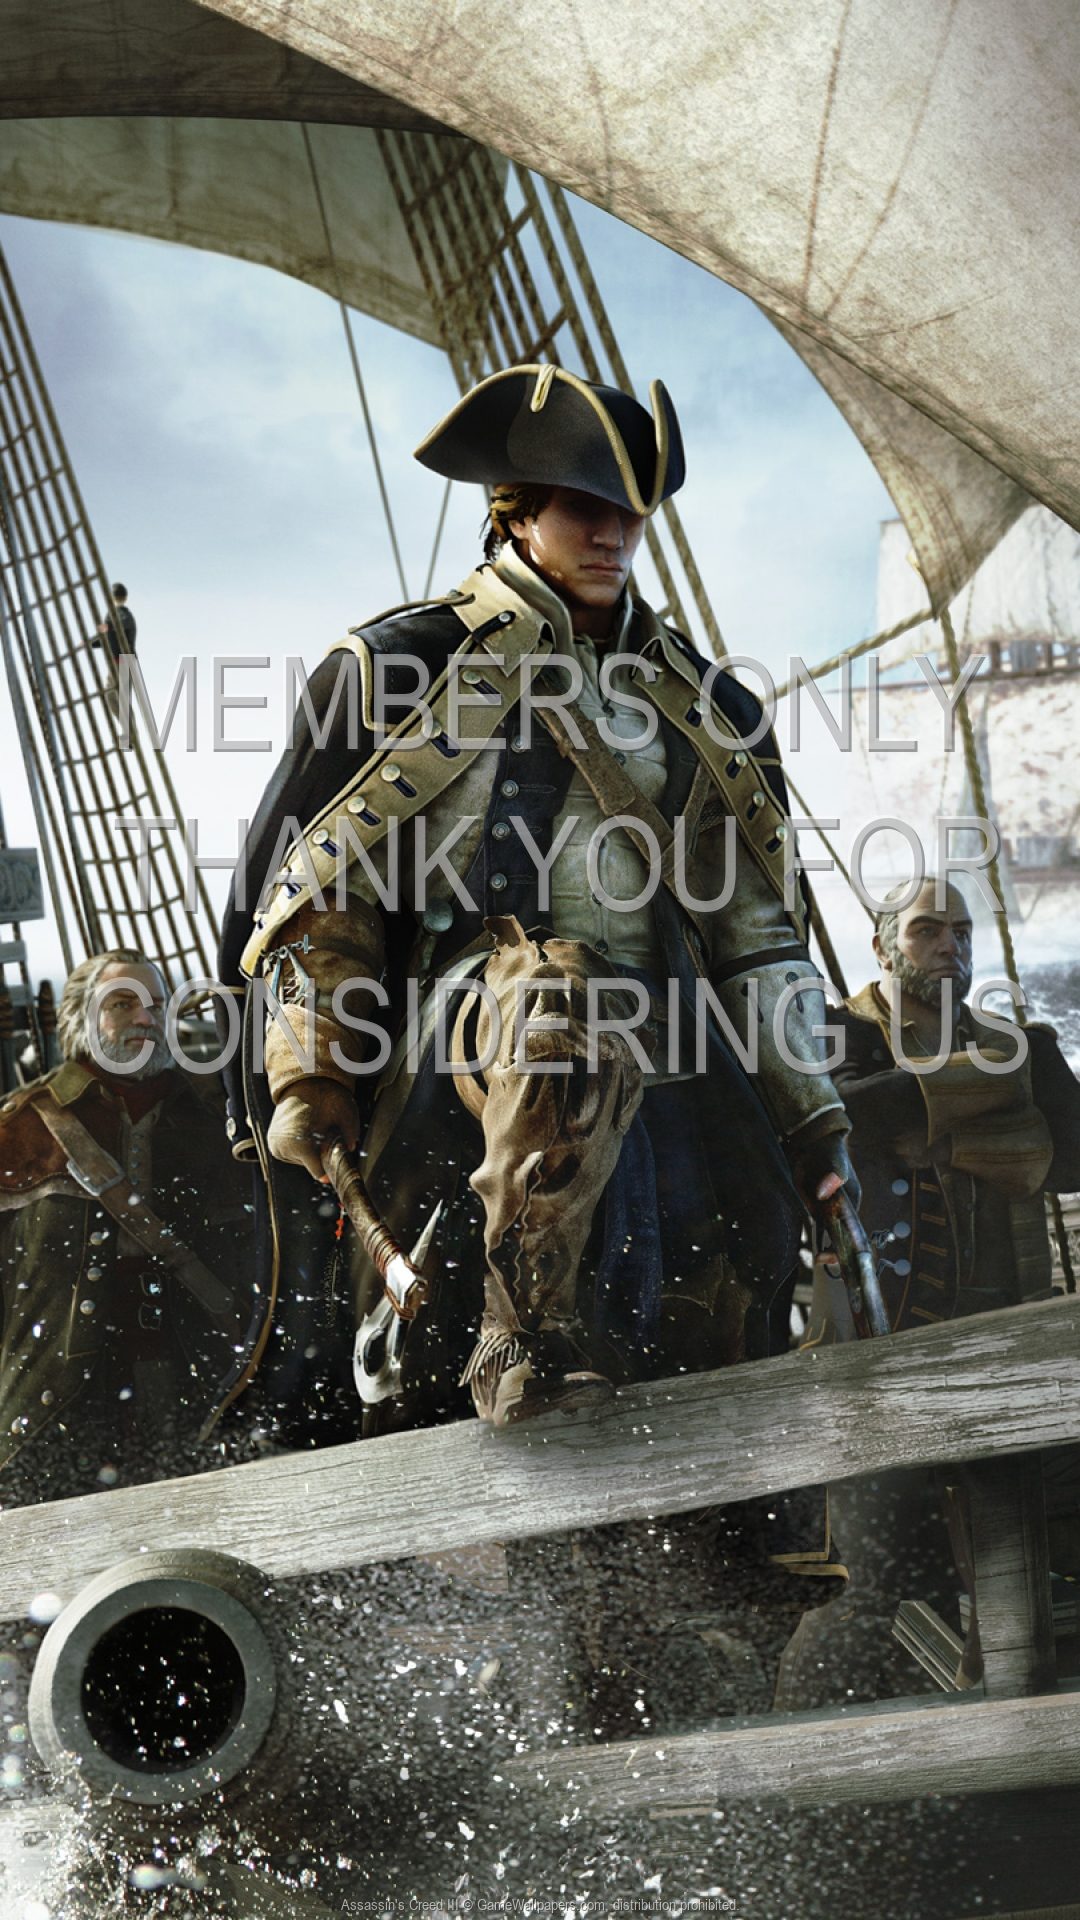 Assassin's Creed III 1920x1080 Mobile wallpaper or background 20